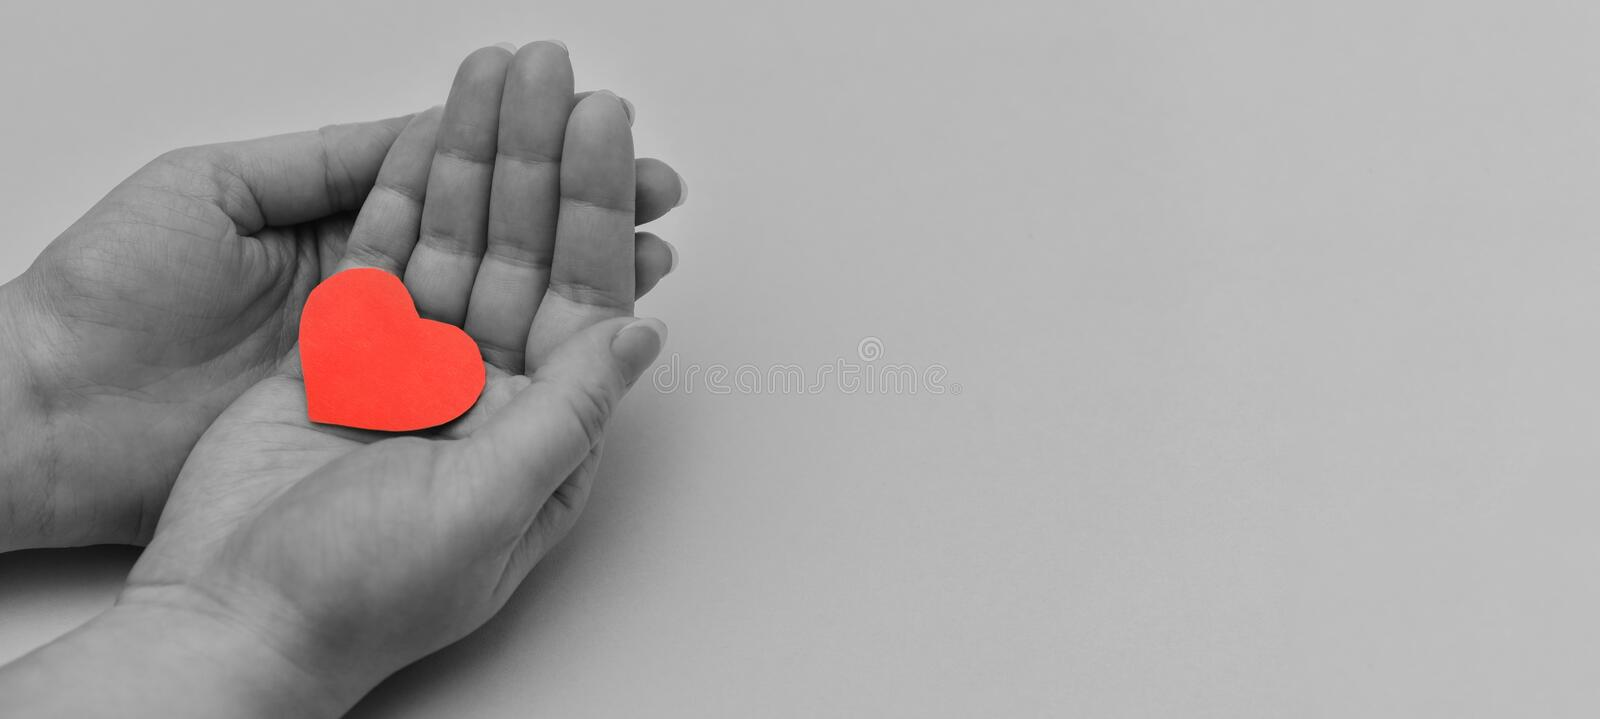 Black and white photo with women`s hands holding a colored red heart. Banner. Fragment of a women`s hands. Gorizontal photo royalty free stock photography